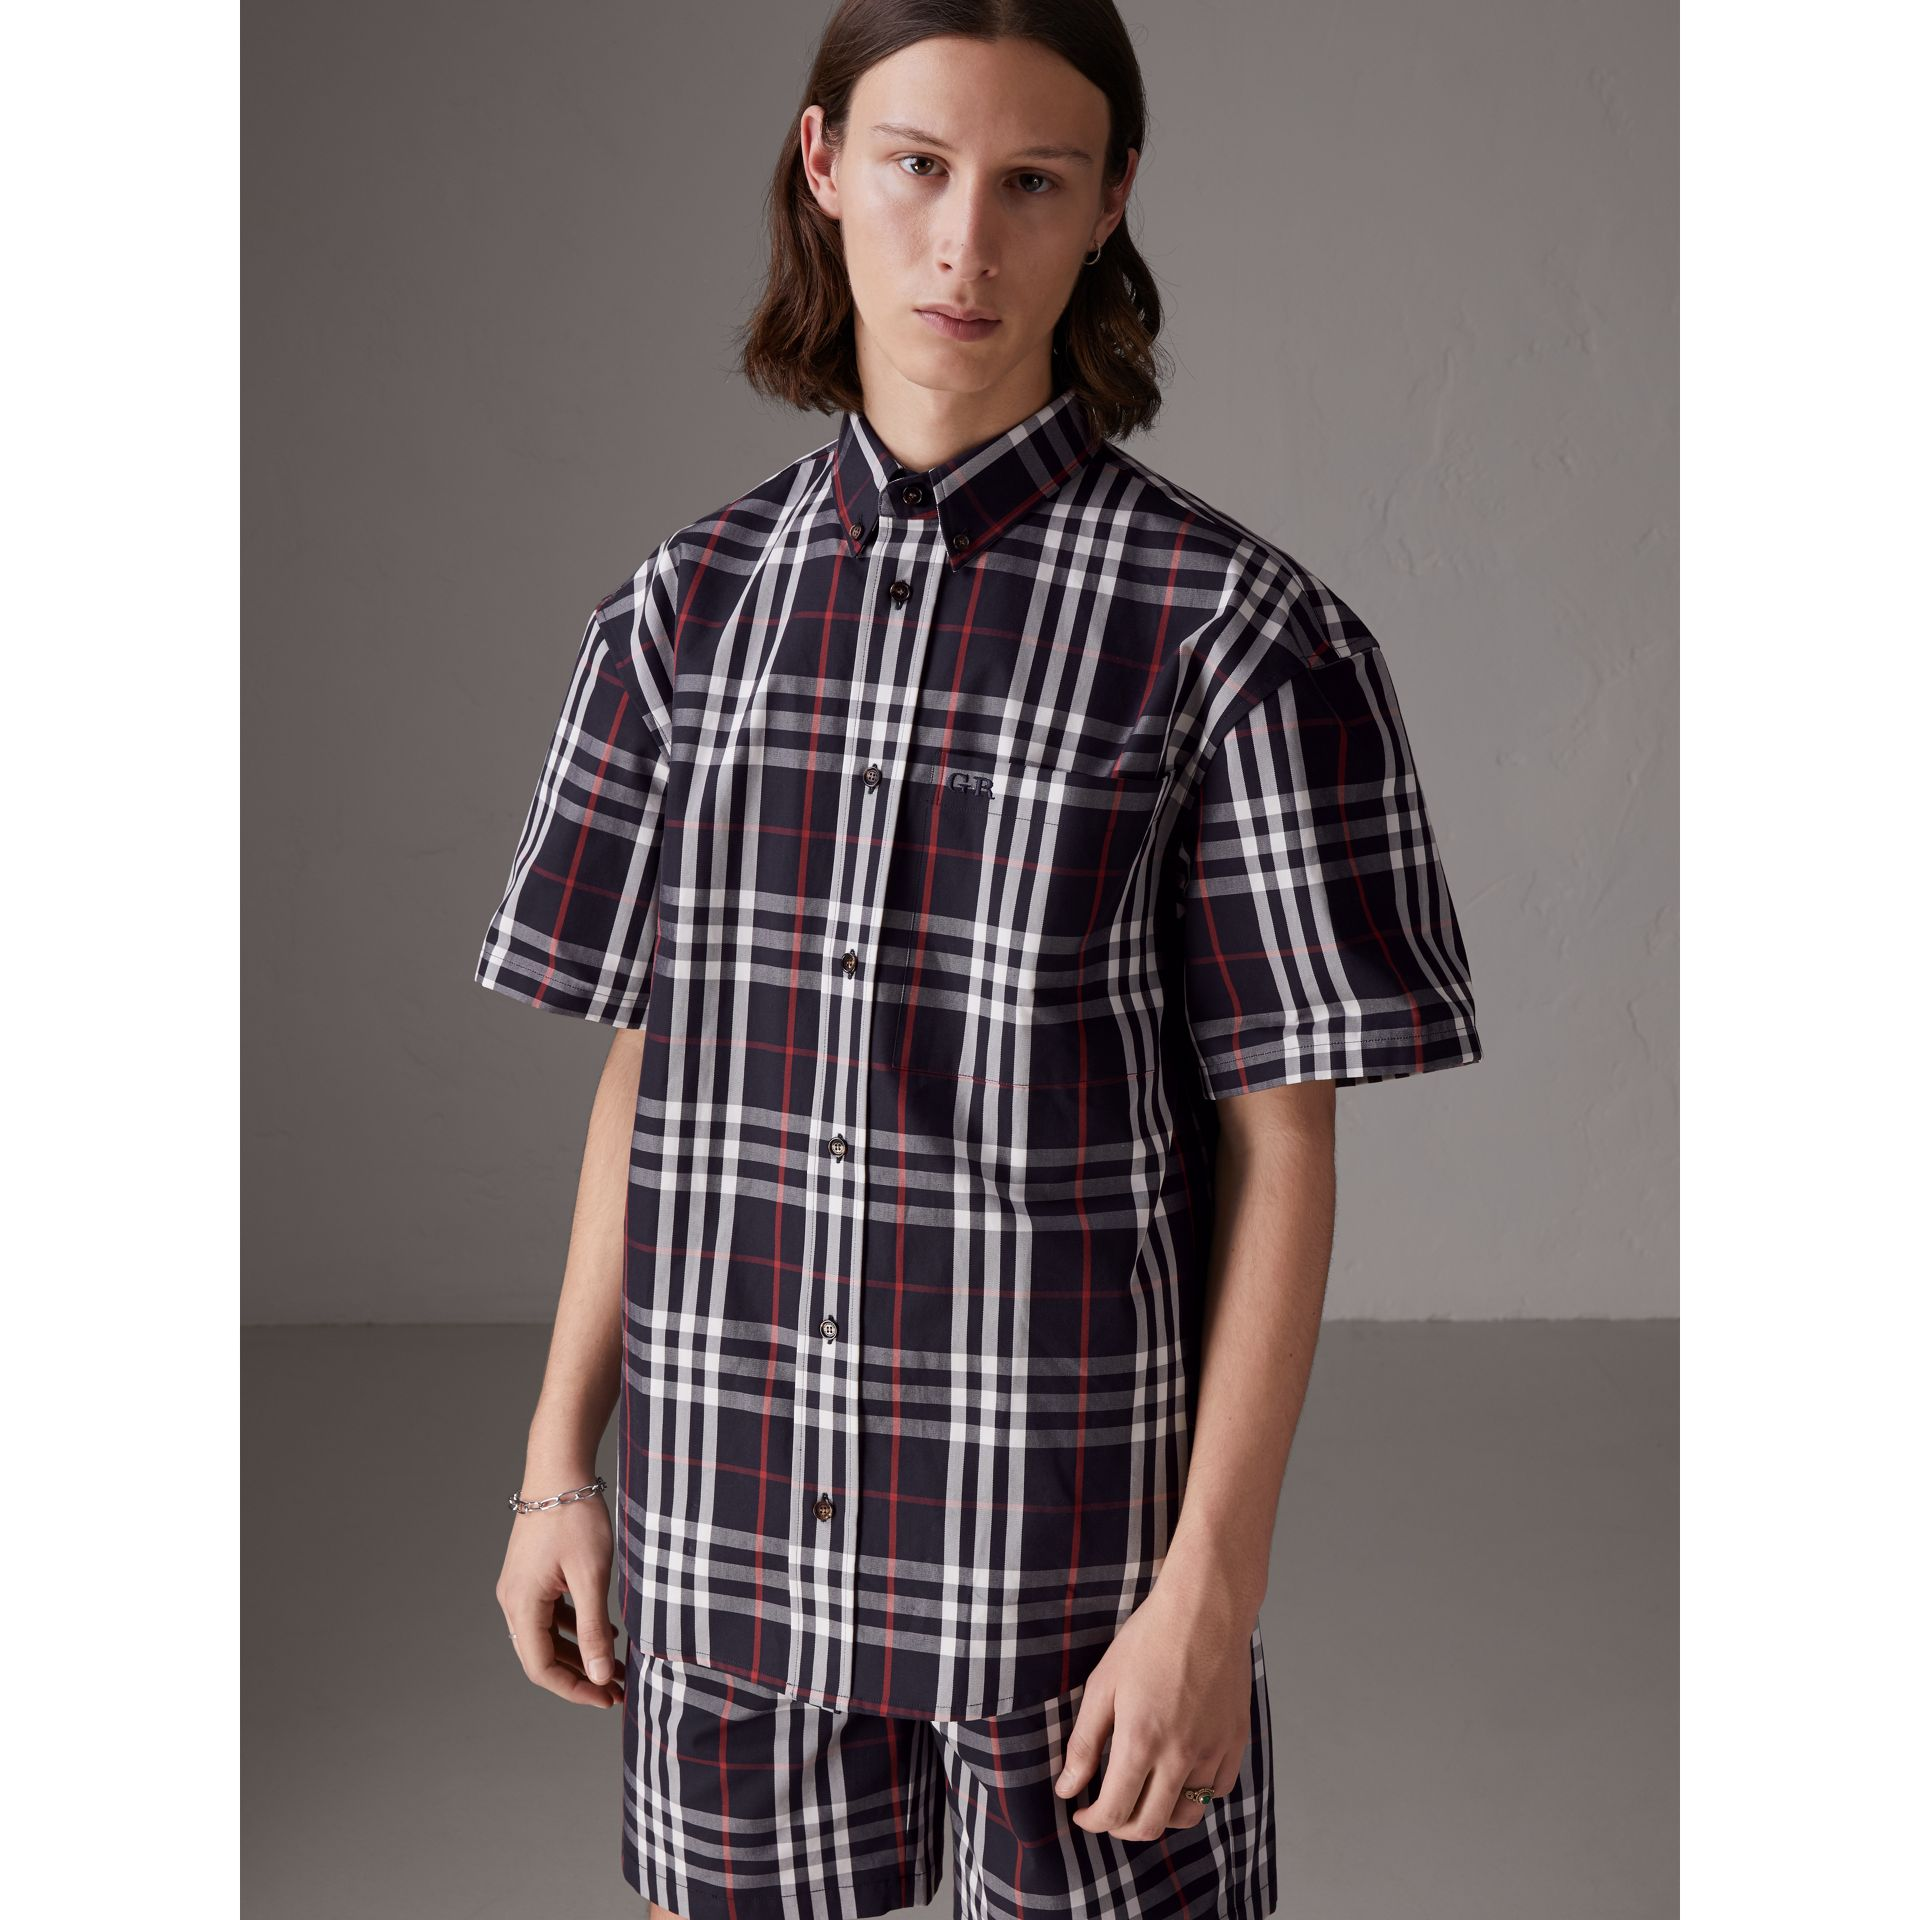 Gosha x Burberry Short-sleeve Check Shirt in Navy | Burberry - gallery image 0